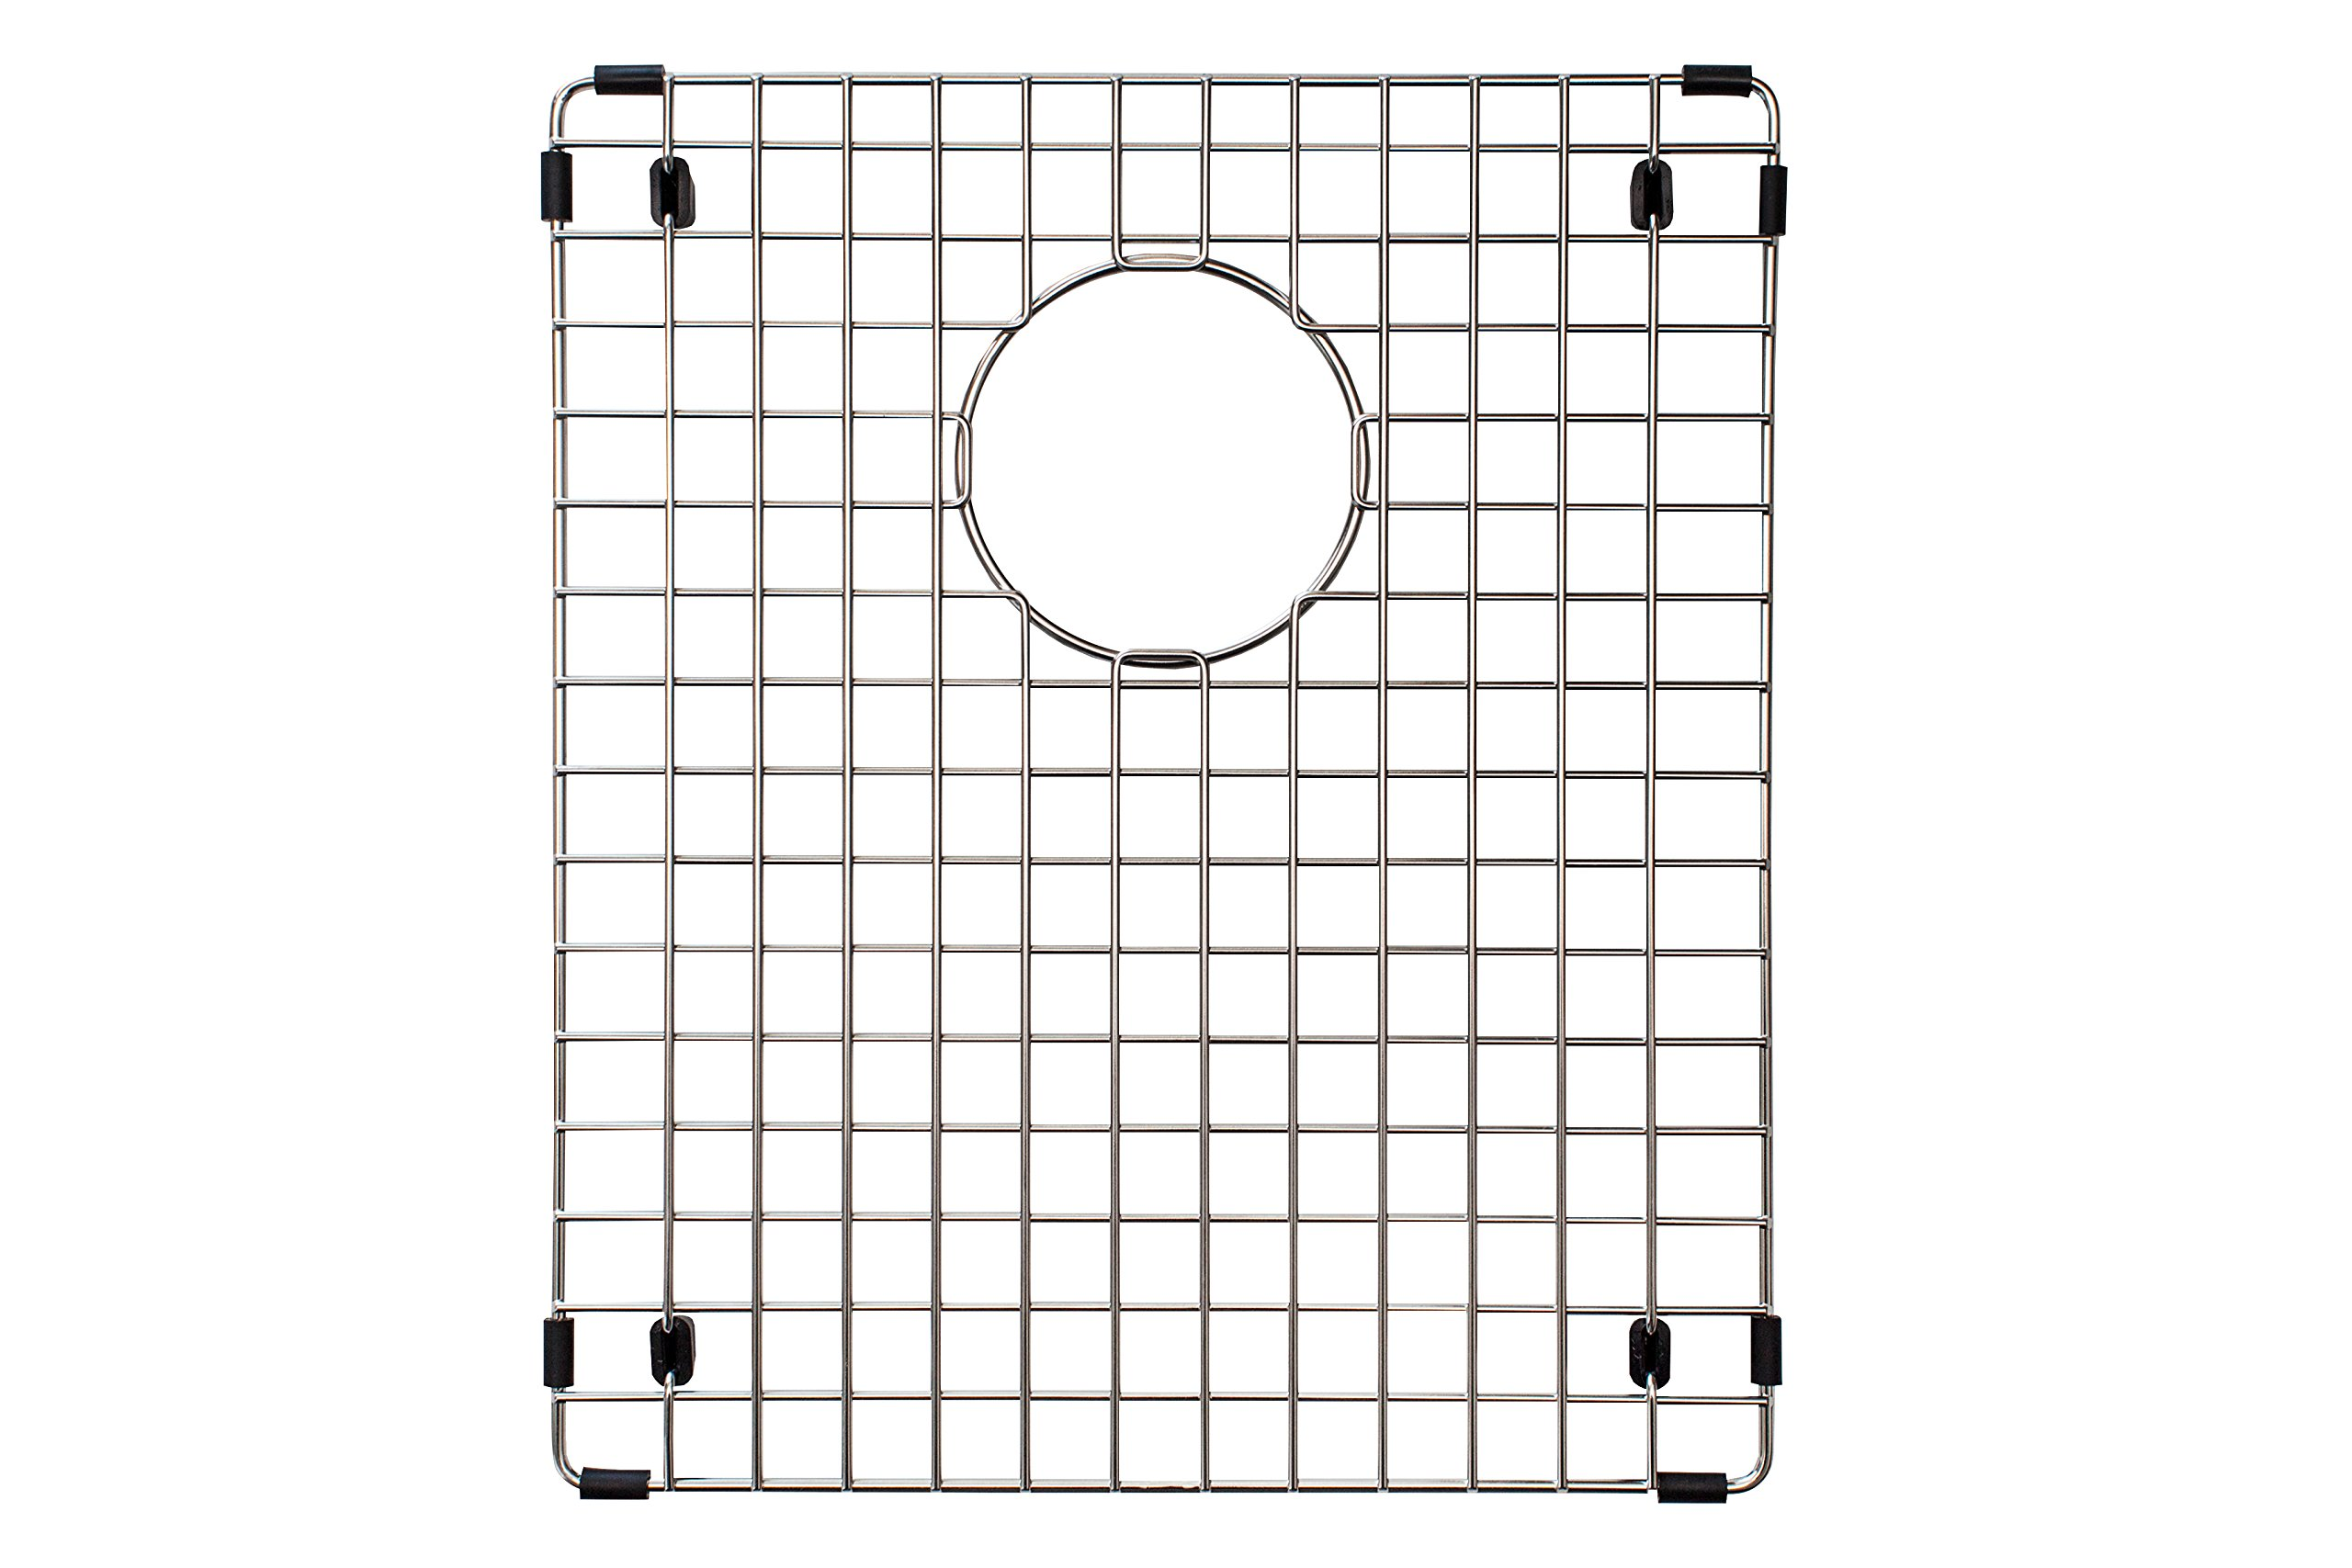 Franke EVBG1318 Evolution Stainless Steel Bottom Sink Grid for use with EVCAG901/EVCAG904, 13.1 x 18 Inches